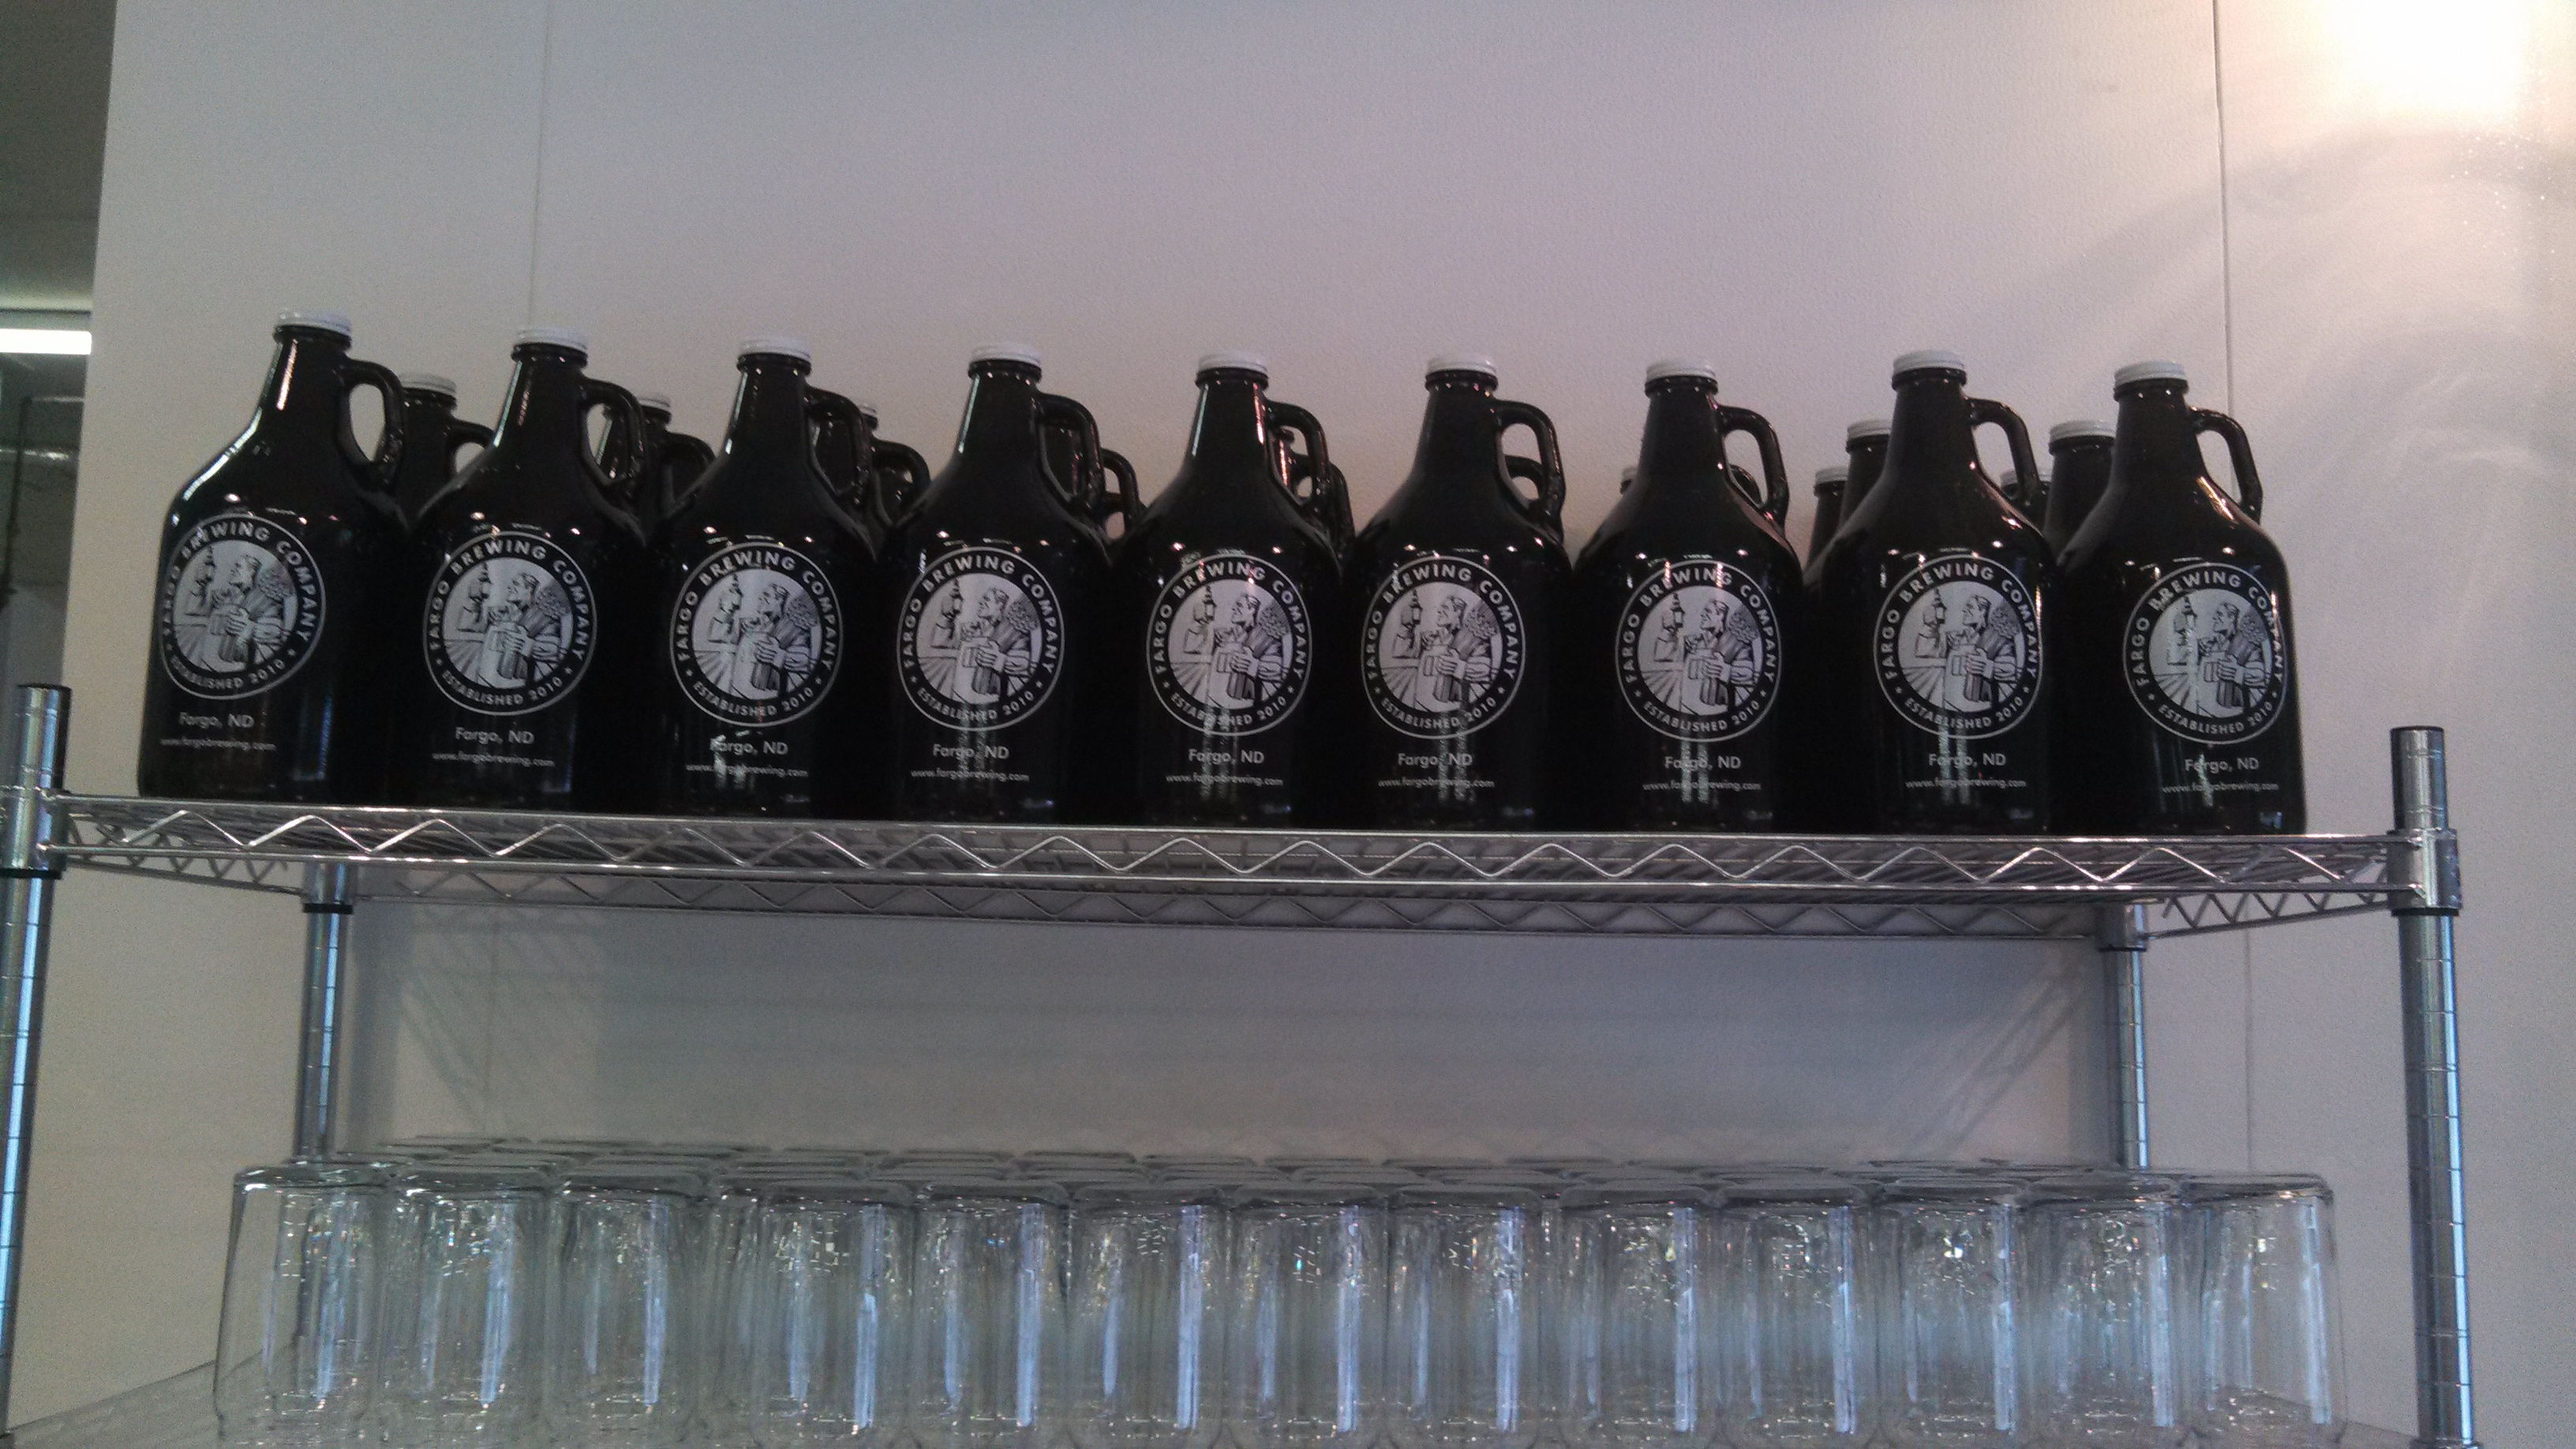 Fargo Brewing Growlers